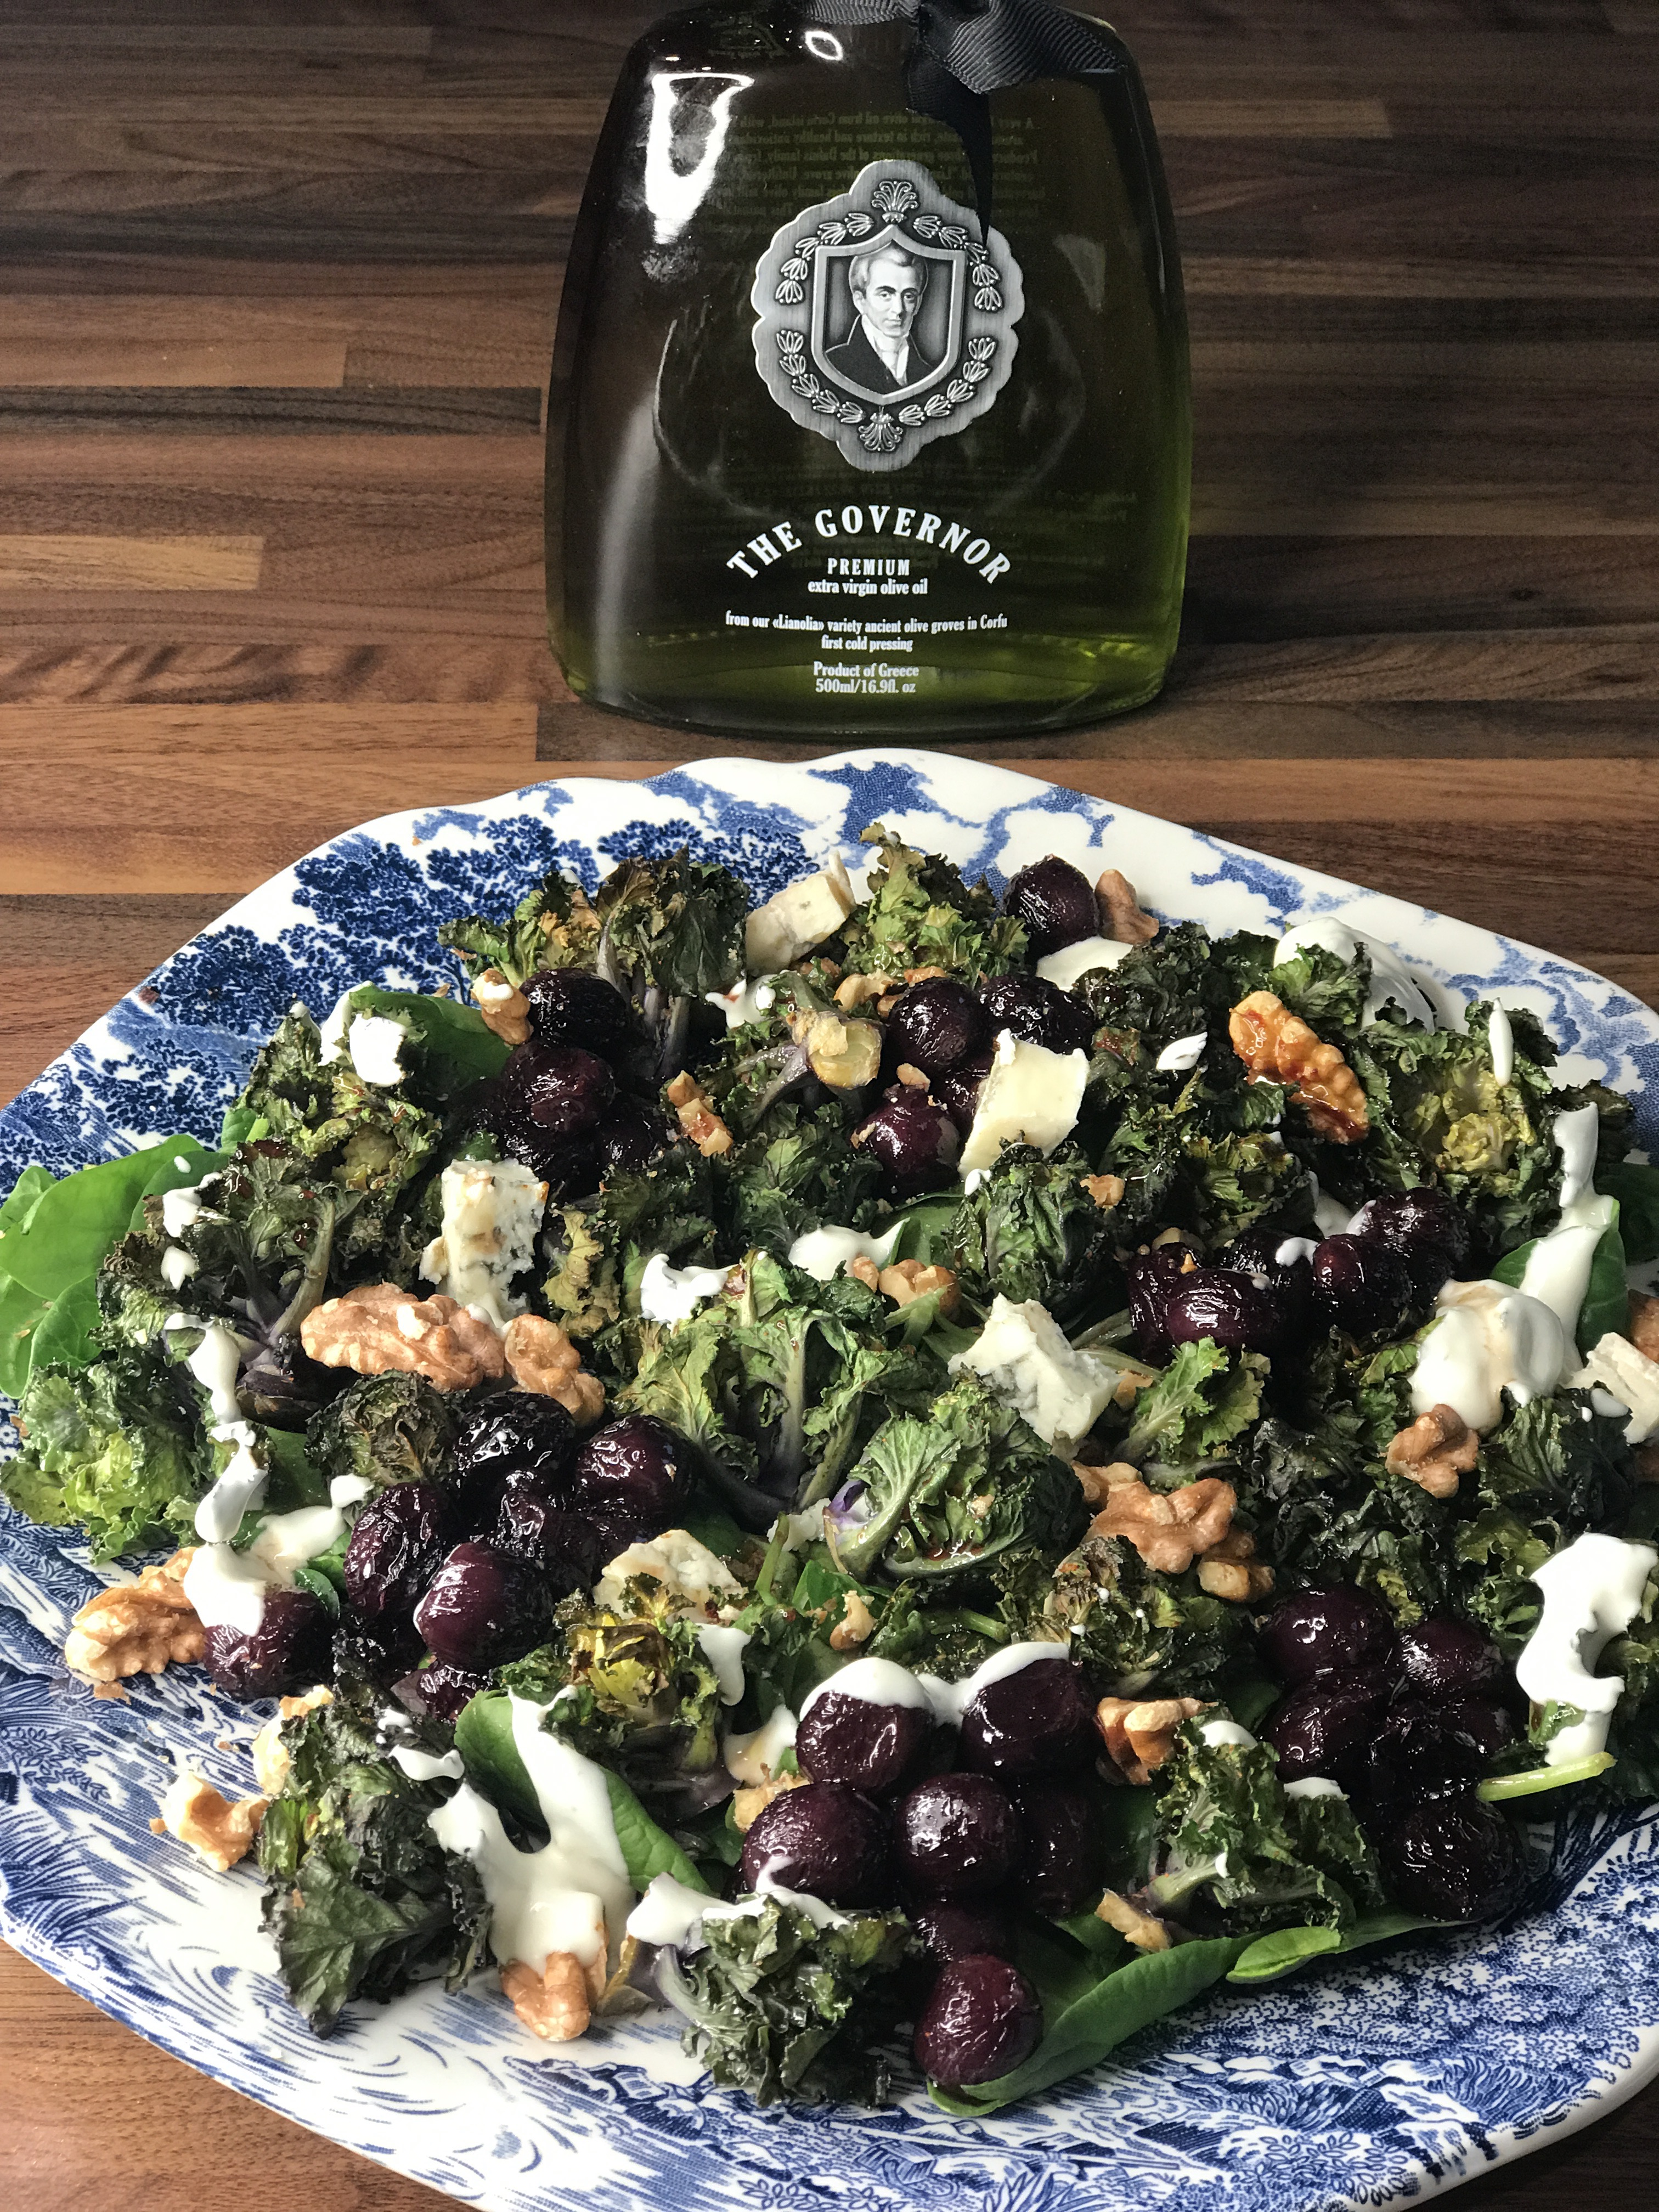 Kalette salad with roasted grapes, walnuts and a healthier blue cheese dressing